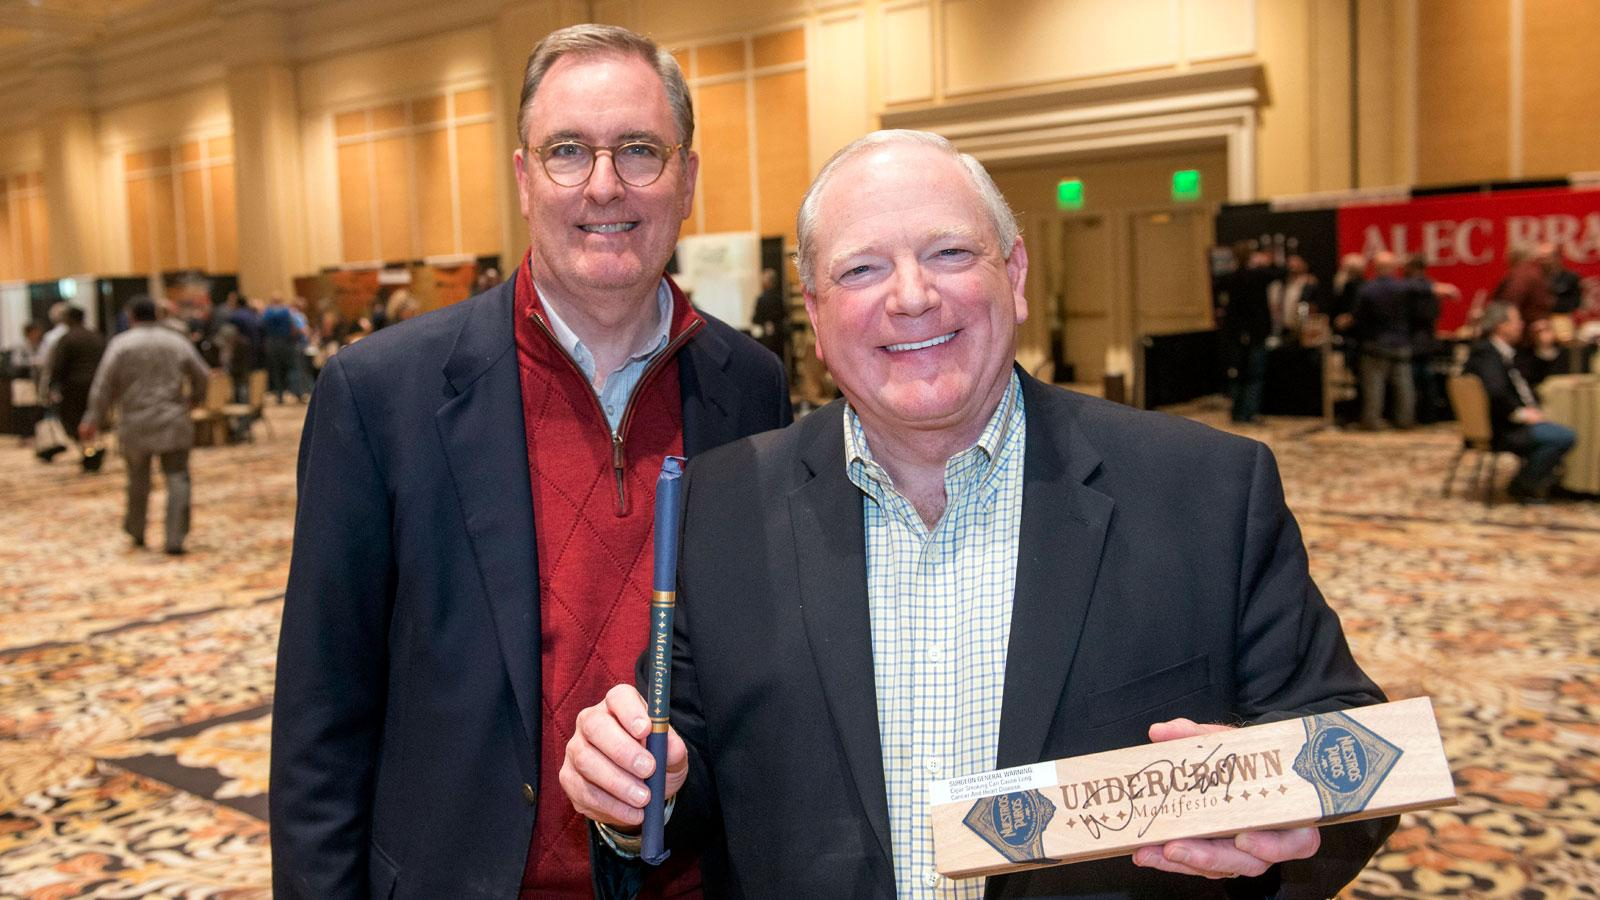 Kent Sullivan and Vidal Martinez with a special A size Undercrown from the Drew Estate booth.